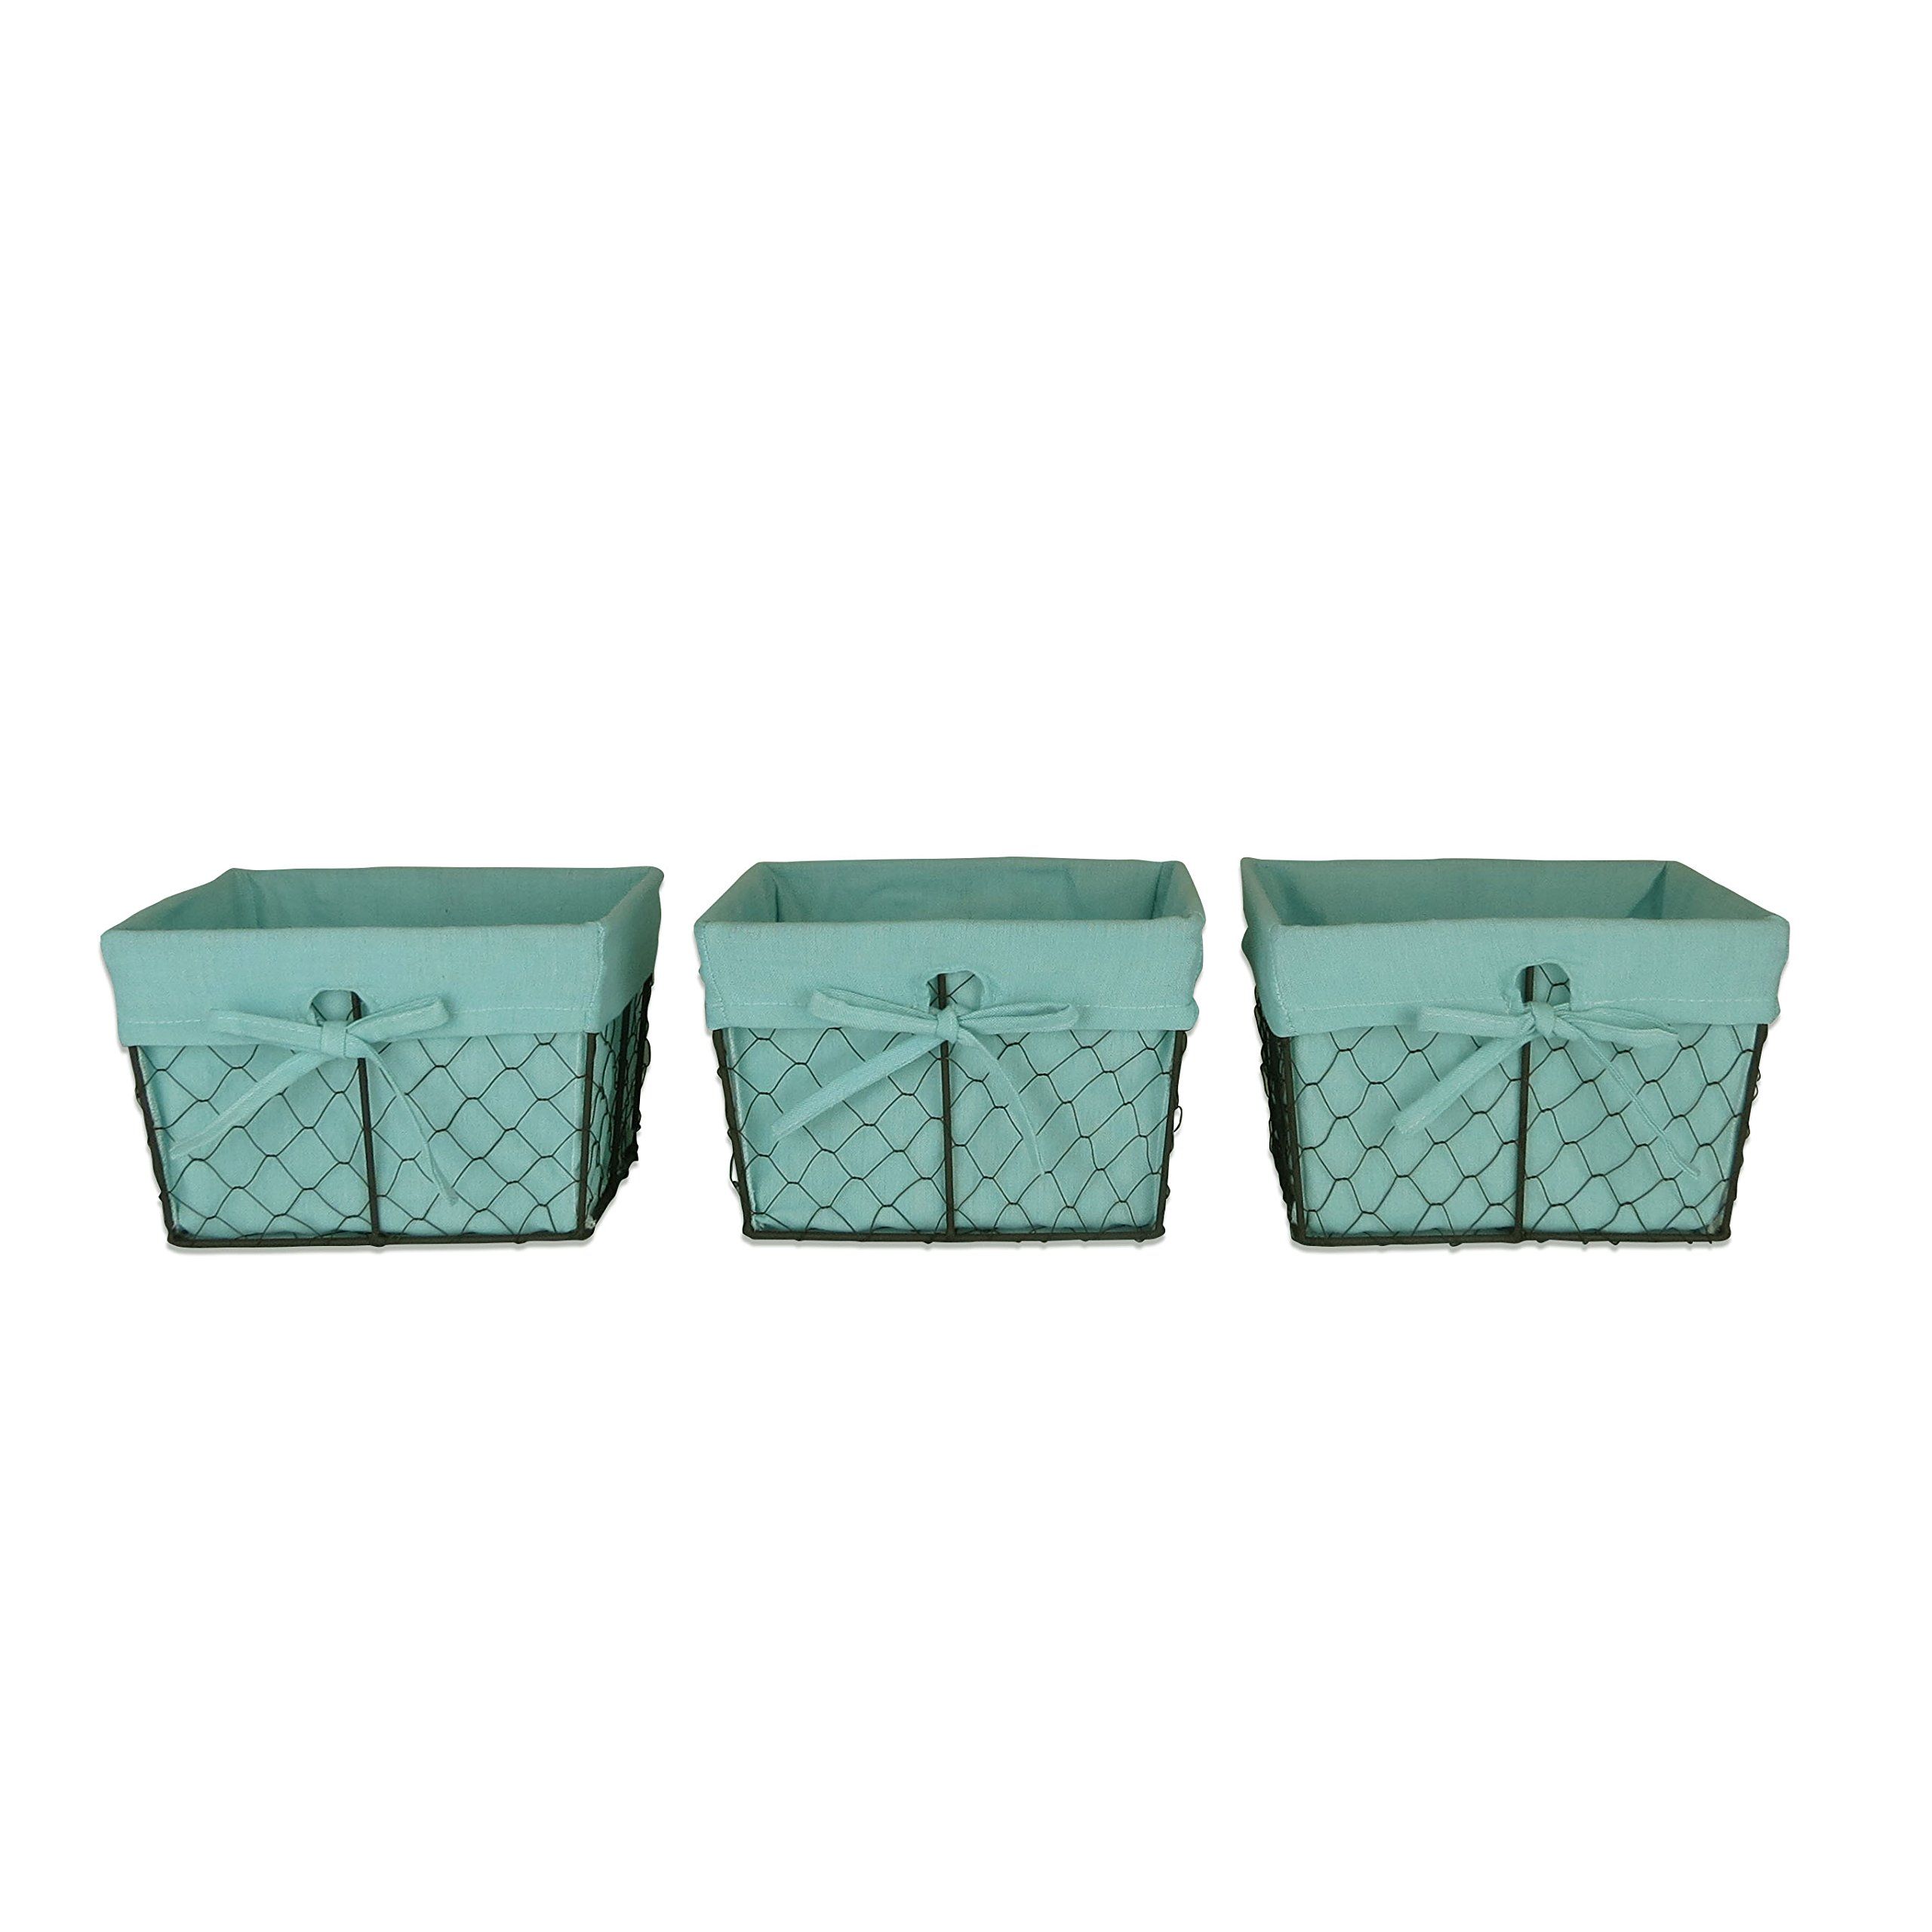 DII Traditions Vintage Food Safe Metal Chicken Wire Storage Baskets with Removable Fabric Liner for Home Décor or Kitchen Use, (Small-Set of 3), Aqua